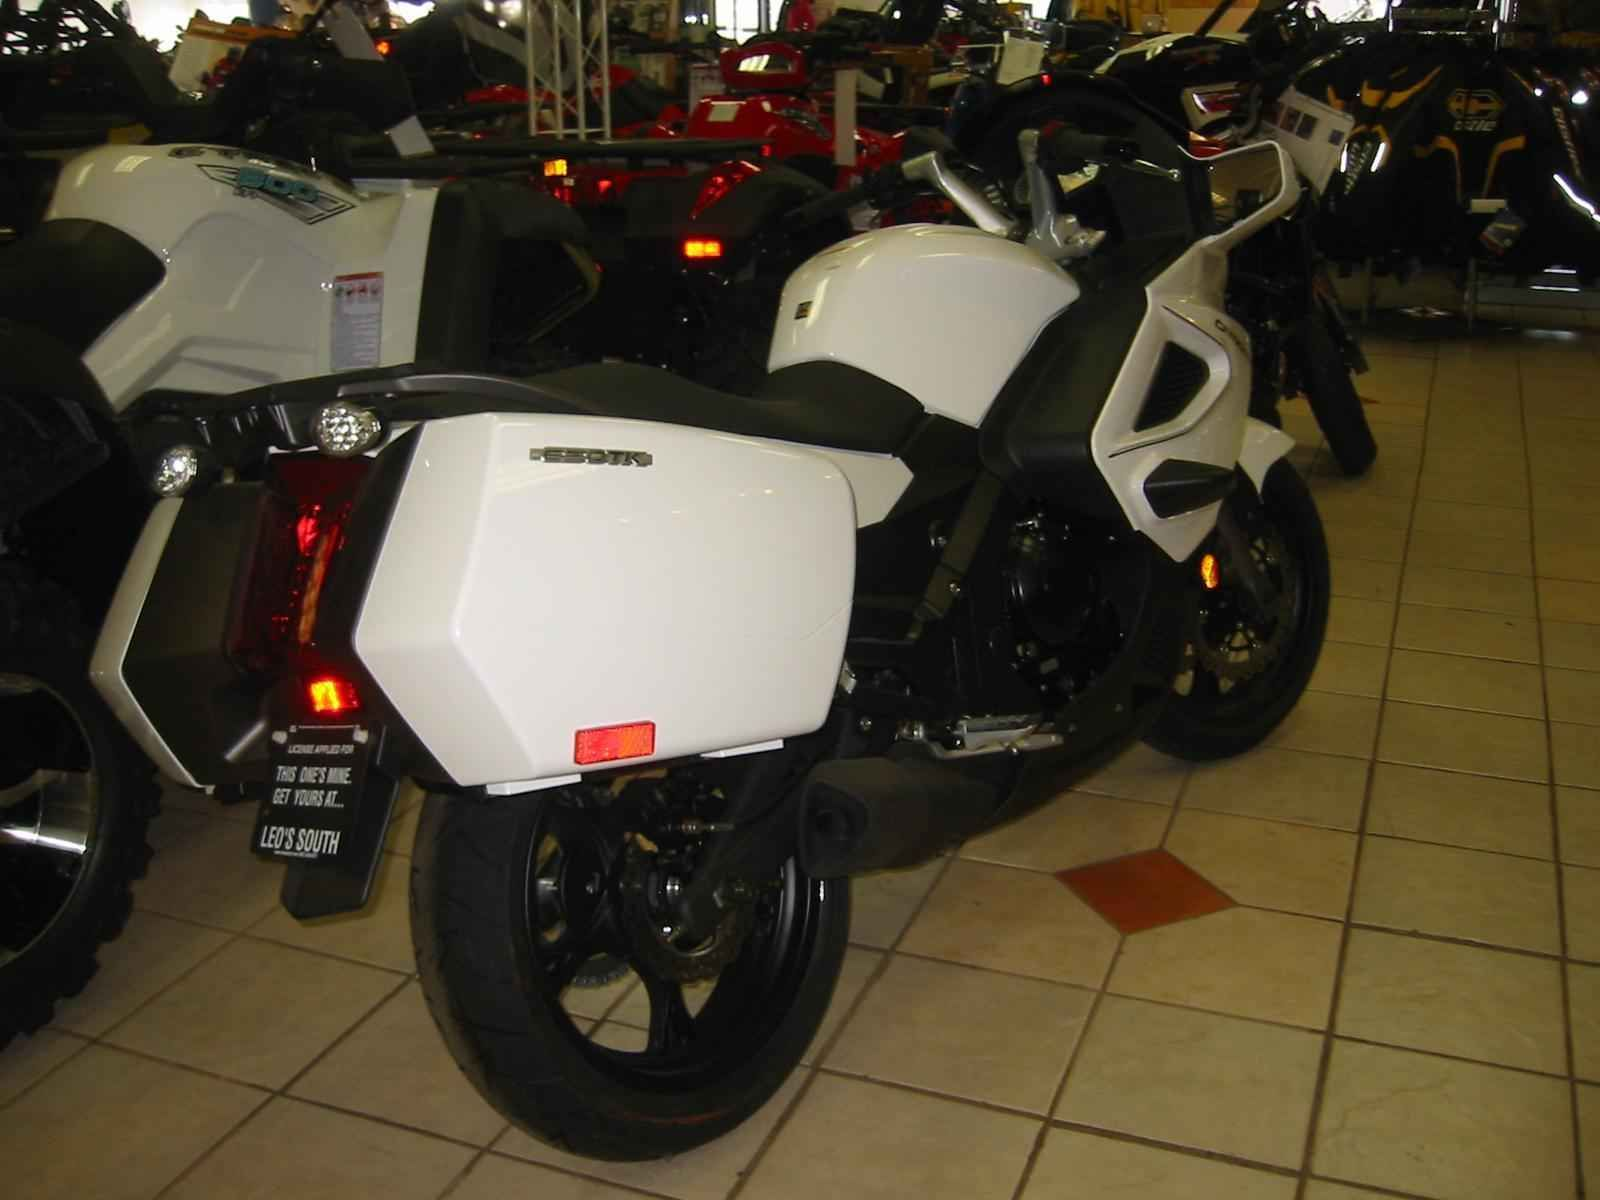 2013 Cfmoto Cf650 2 650tk Motorcycles For Sale Sport Touring Touring Bike